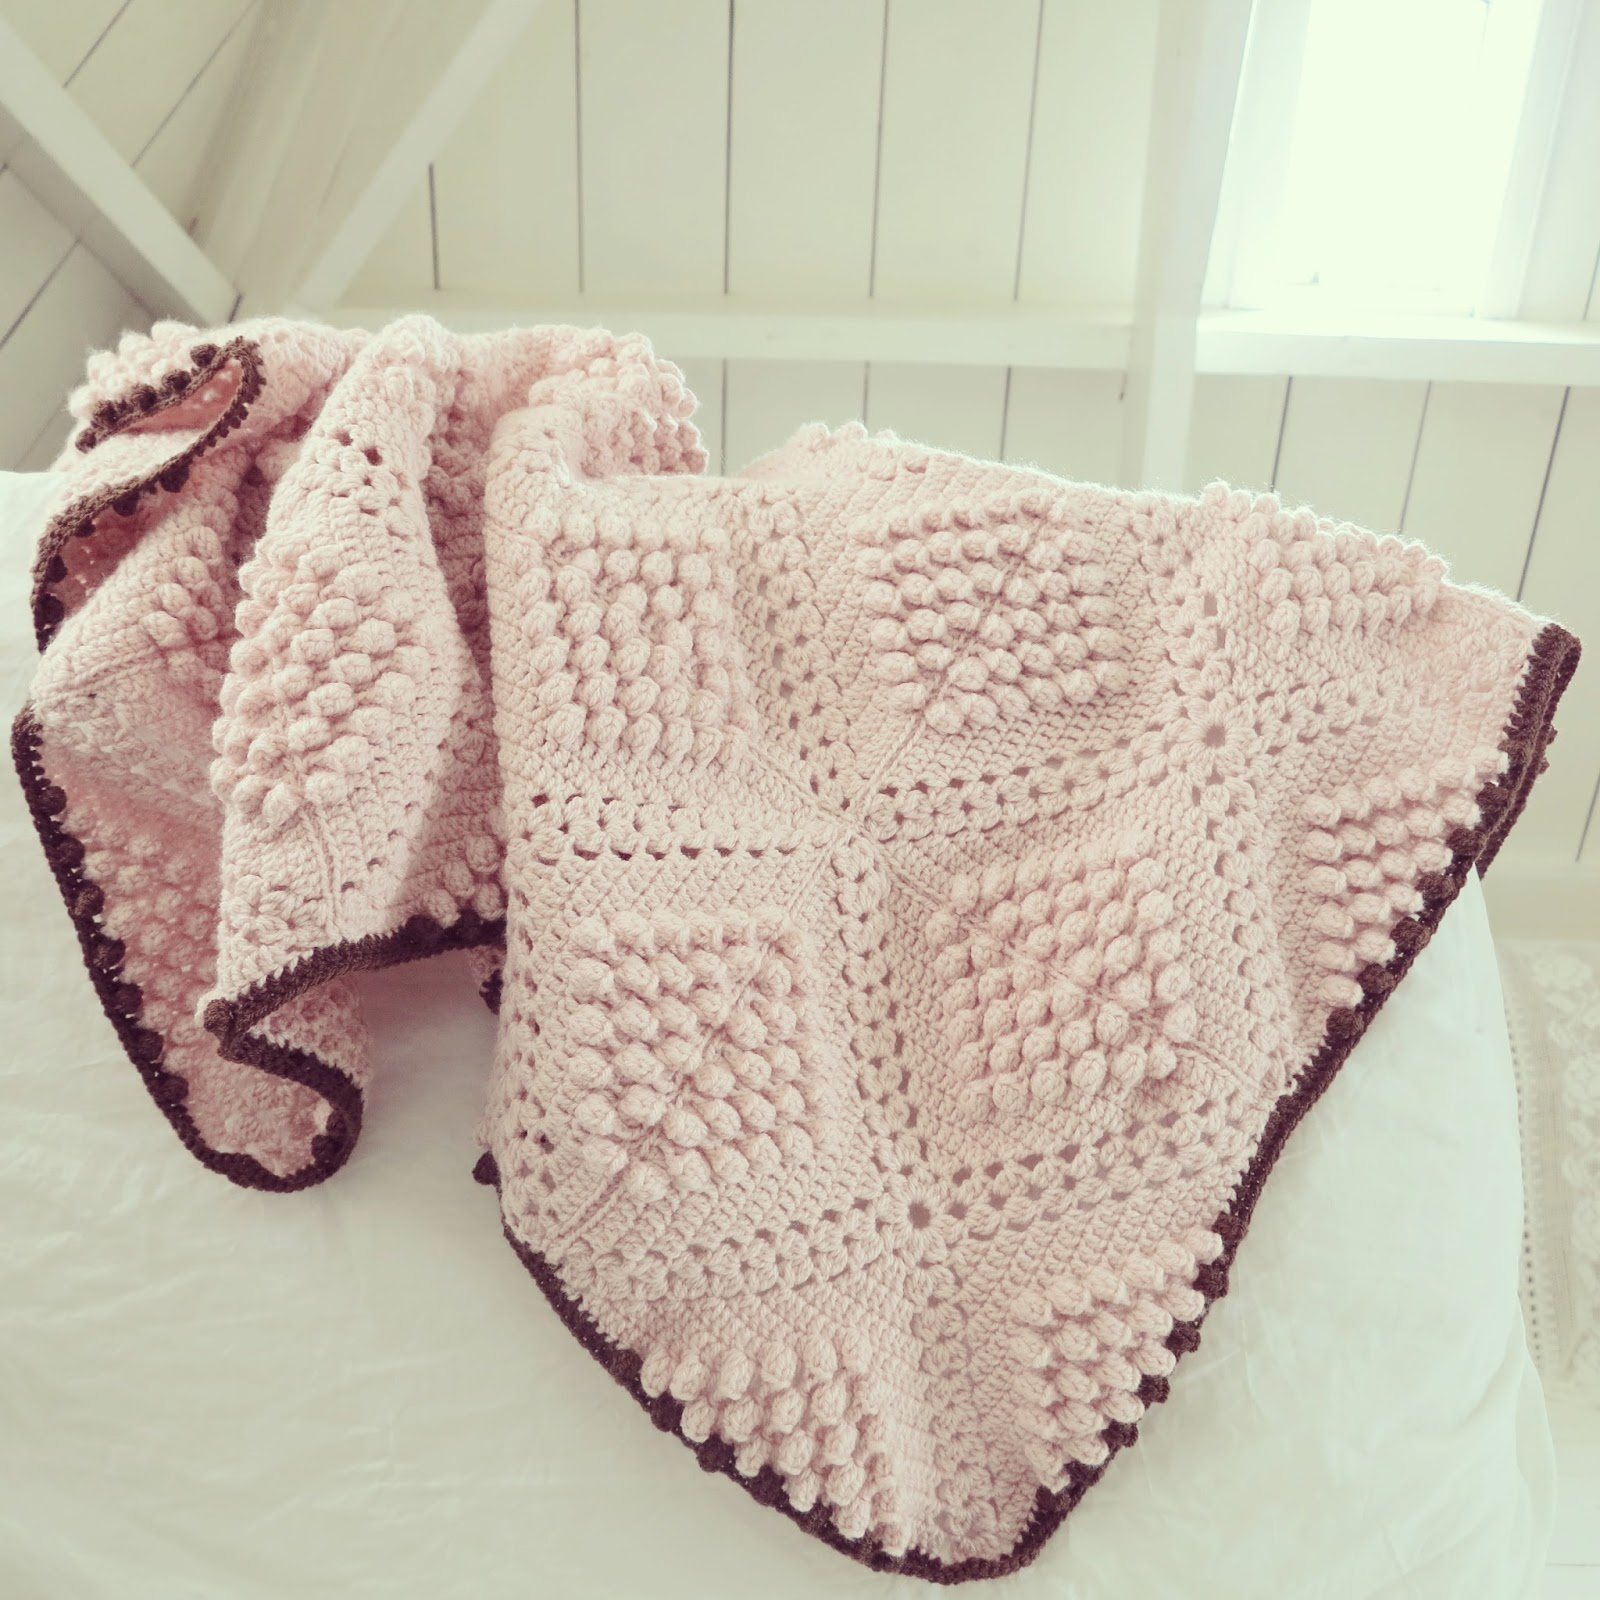 Crochet Stitches Bobble : ... , Diamond Bobble Crochet Stitch Pattern Free Crochet Share The